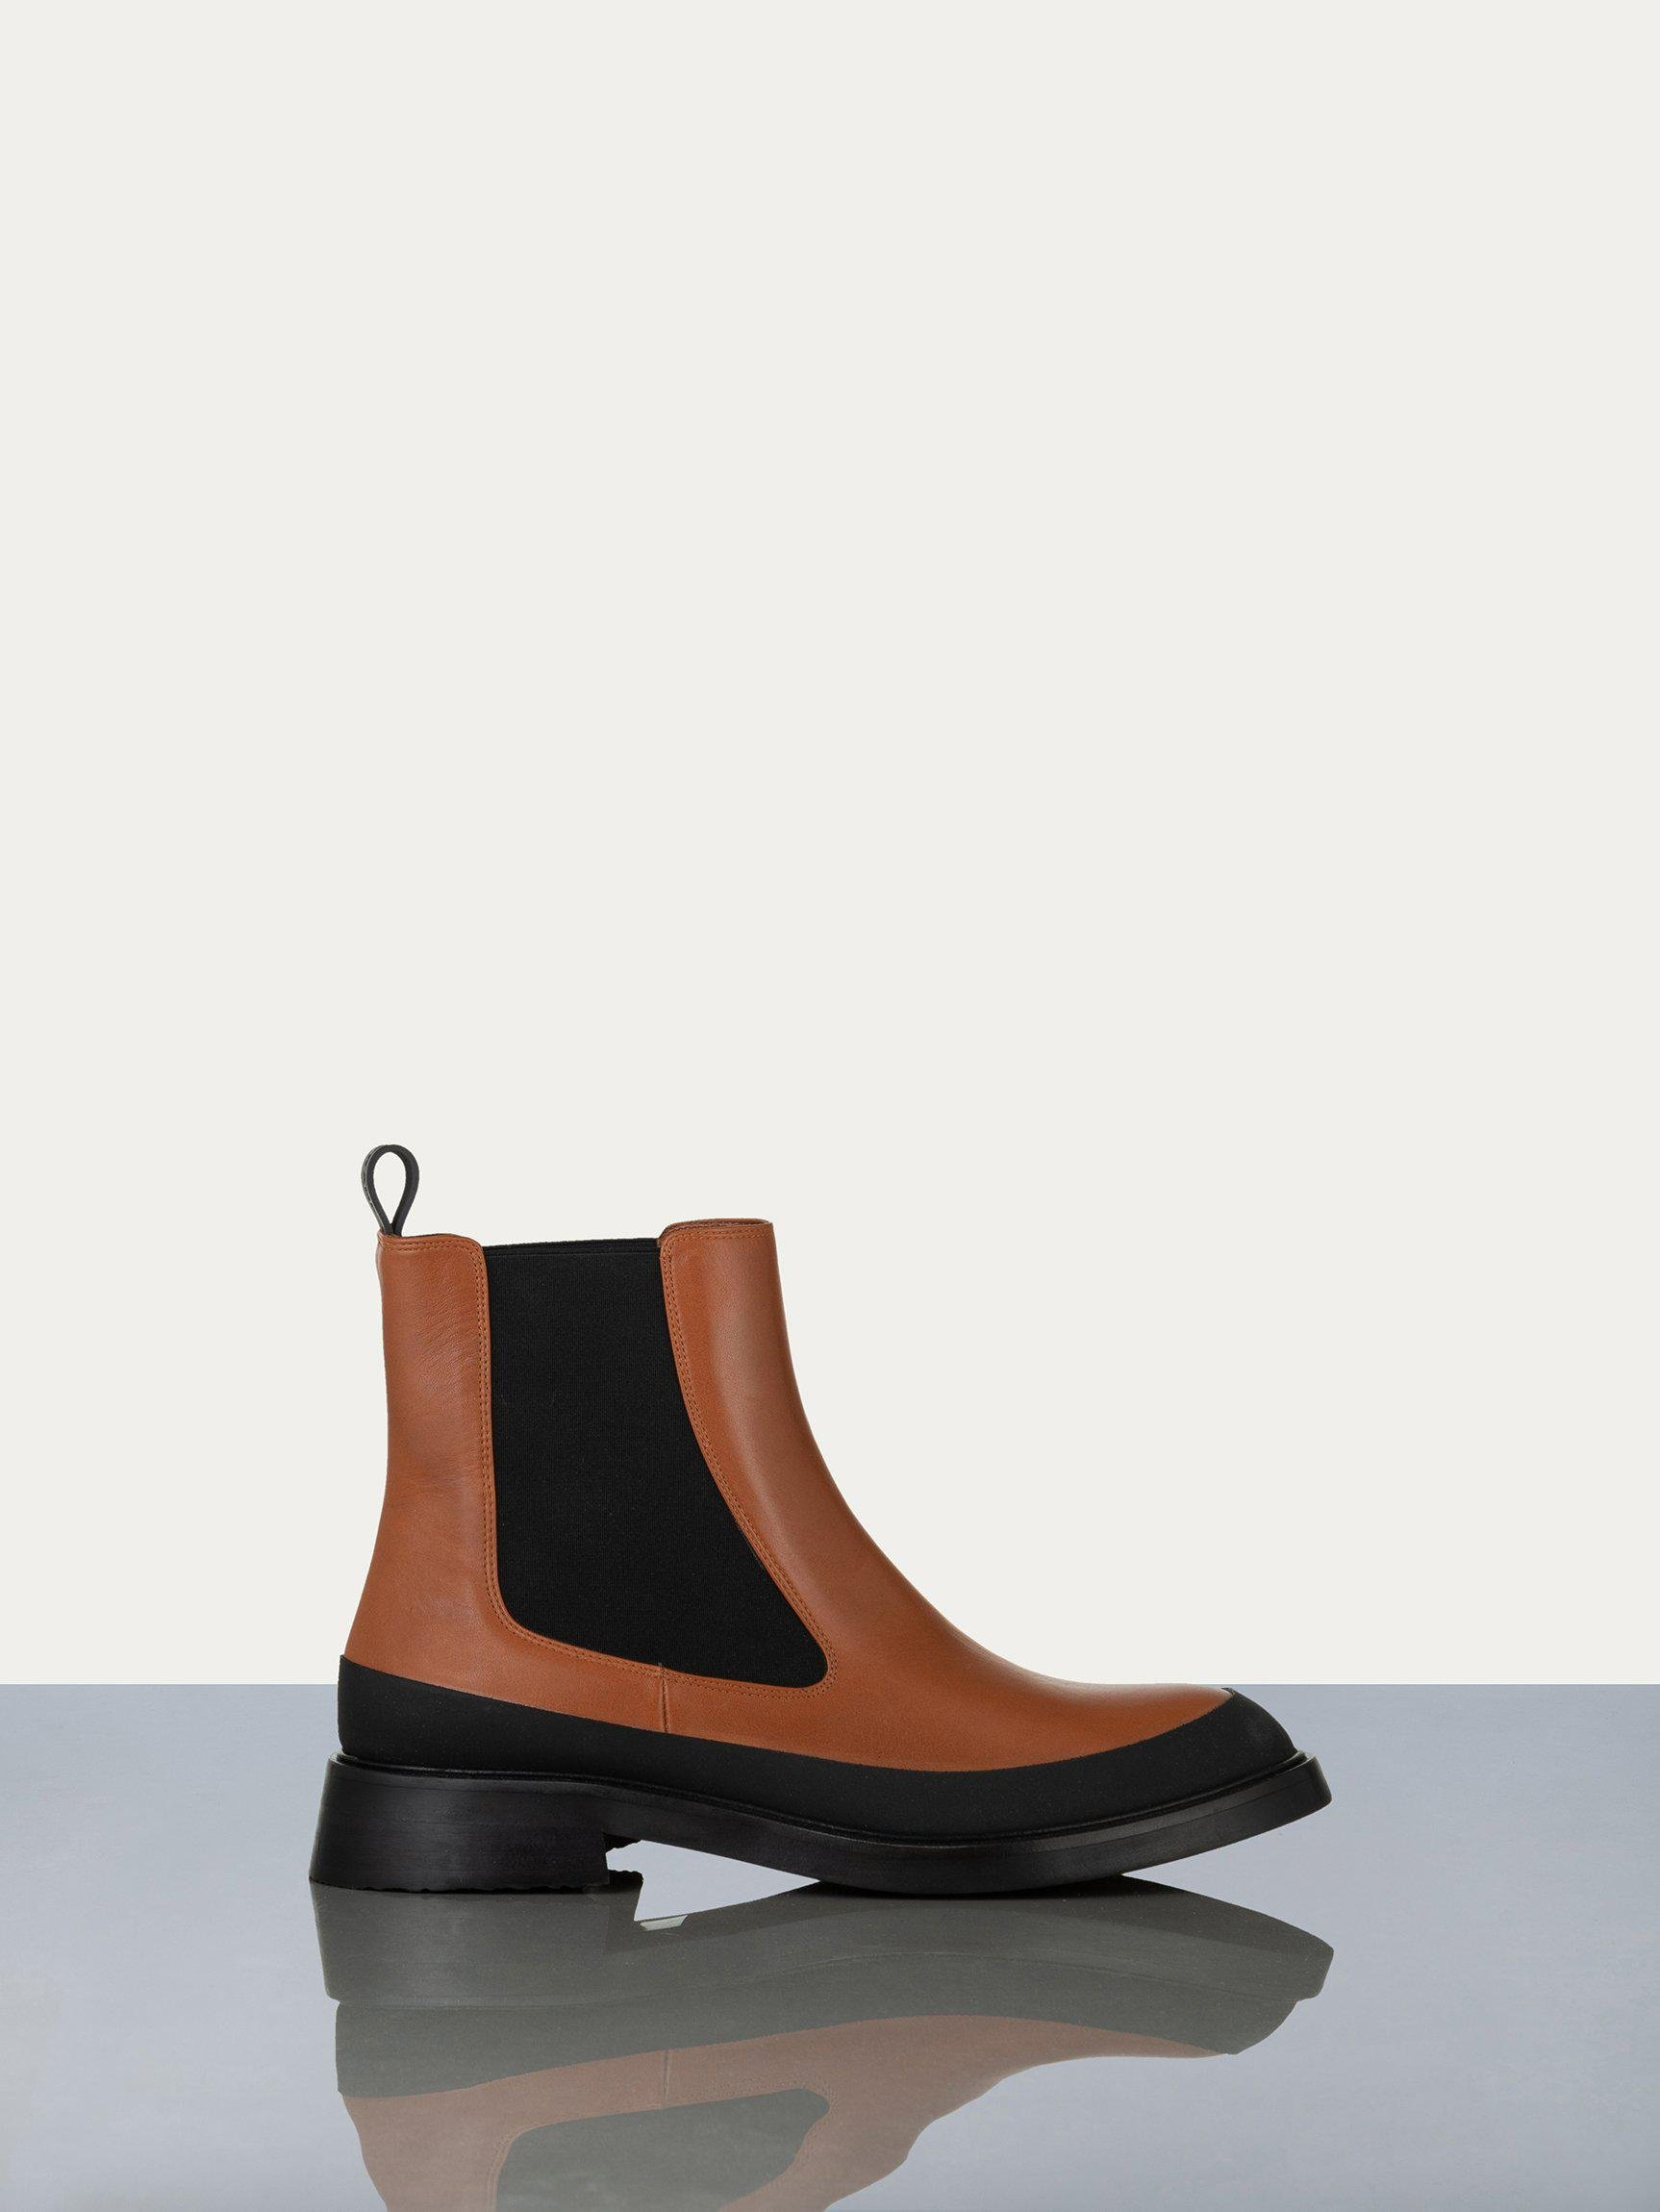 Le Holland Boot -- Tobacco